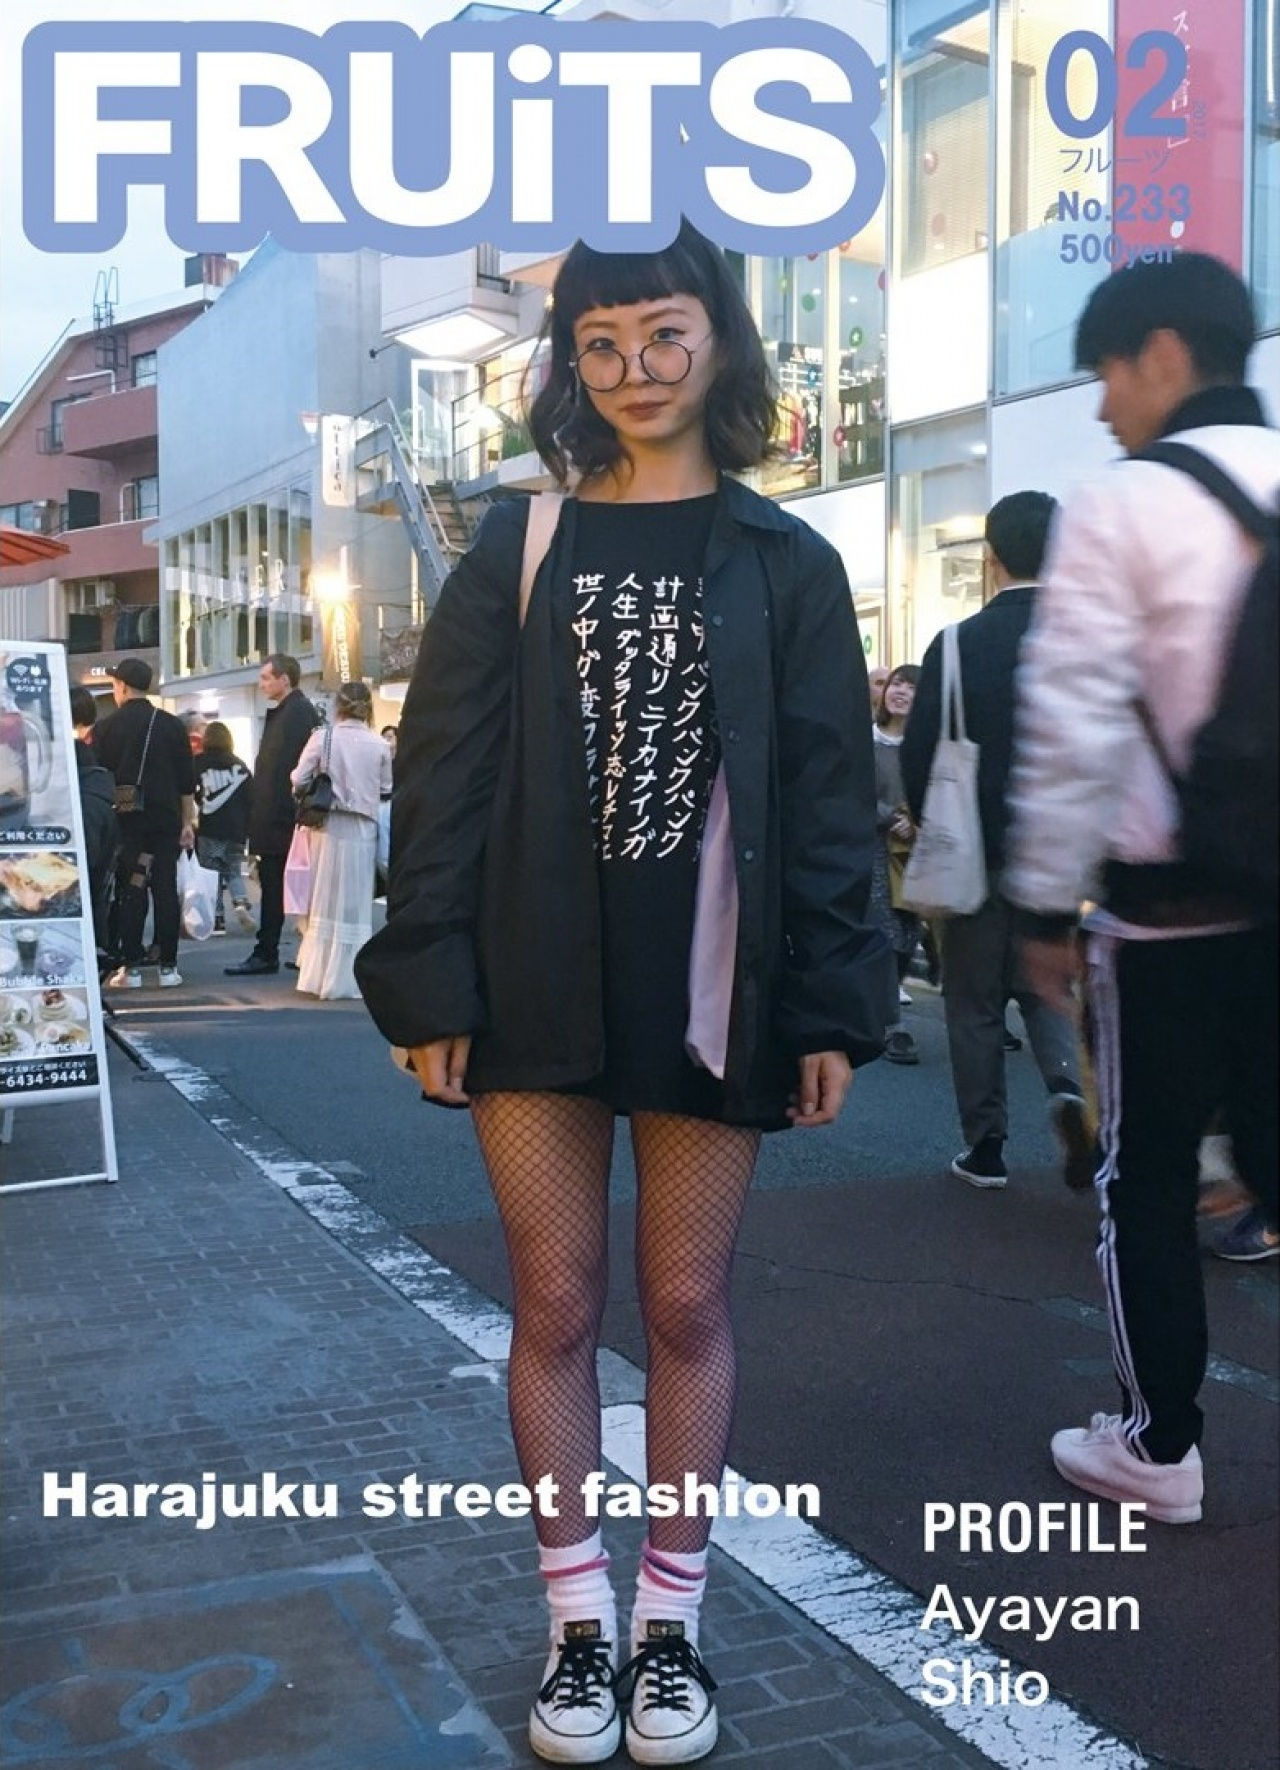 """The birth of Japanese """"street fashion"""", especially as it found heavy mediation outside of the confines of Japan and the medium of paper through the early days of the World Wide Web in the latter half of the 1990s, left the indelible mark of Japanese otherness on the very idea of the street, fashion, and even Japan itself."""